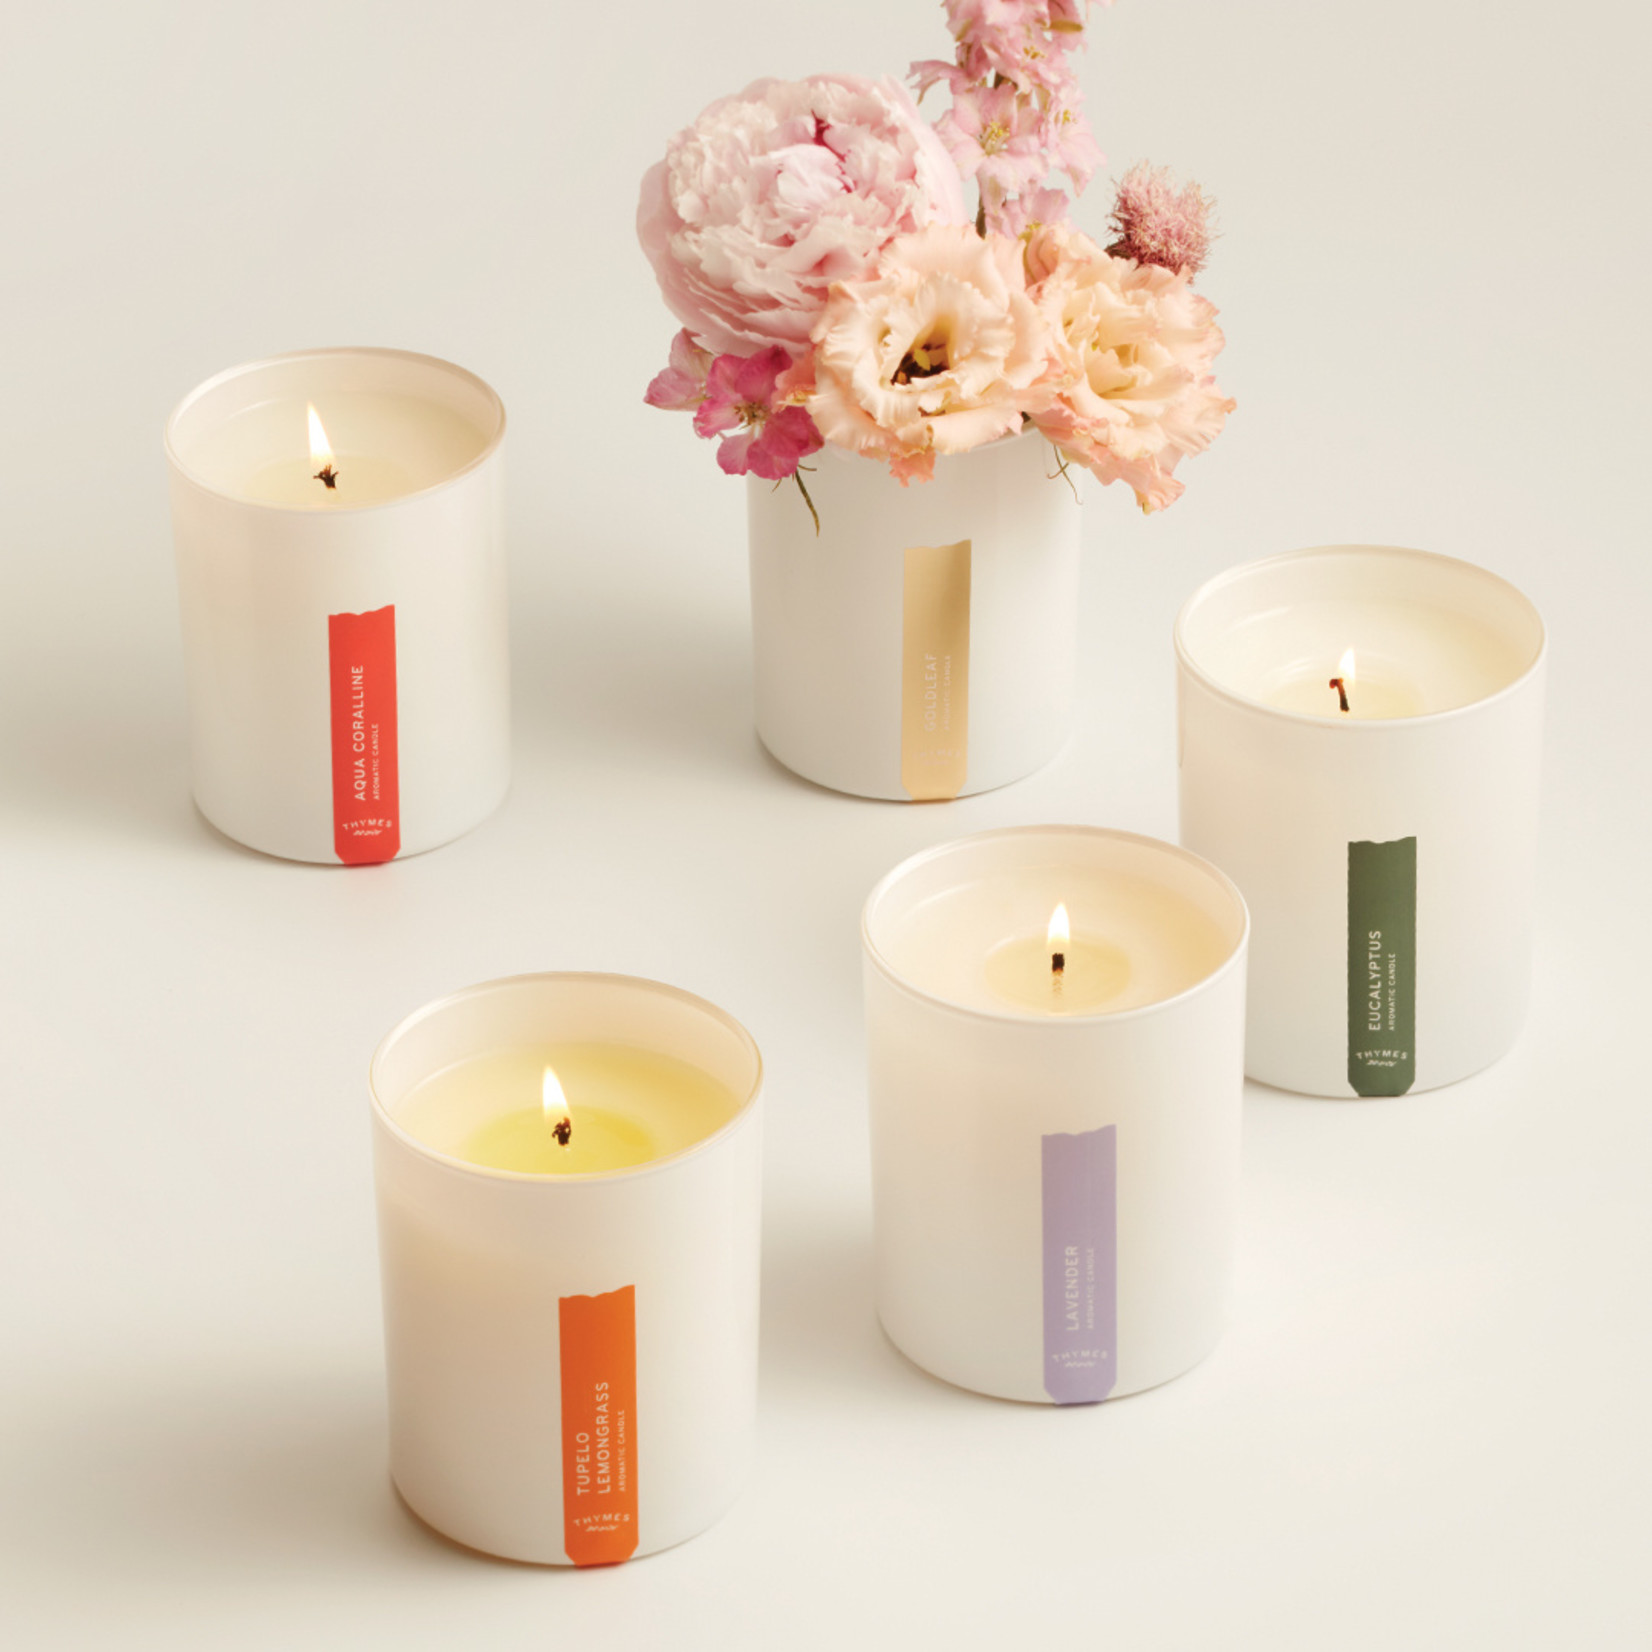 Thymes Aromatic Candle